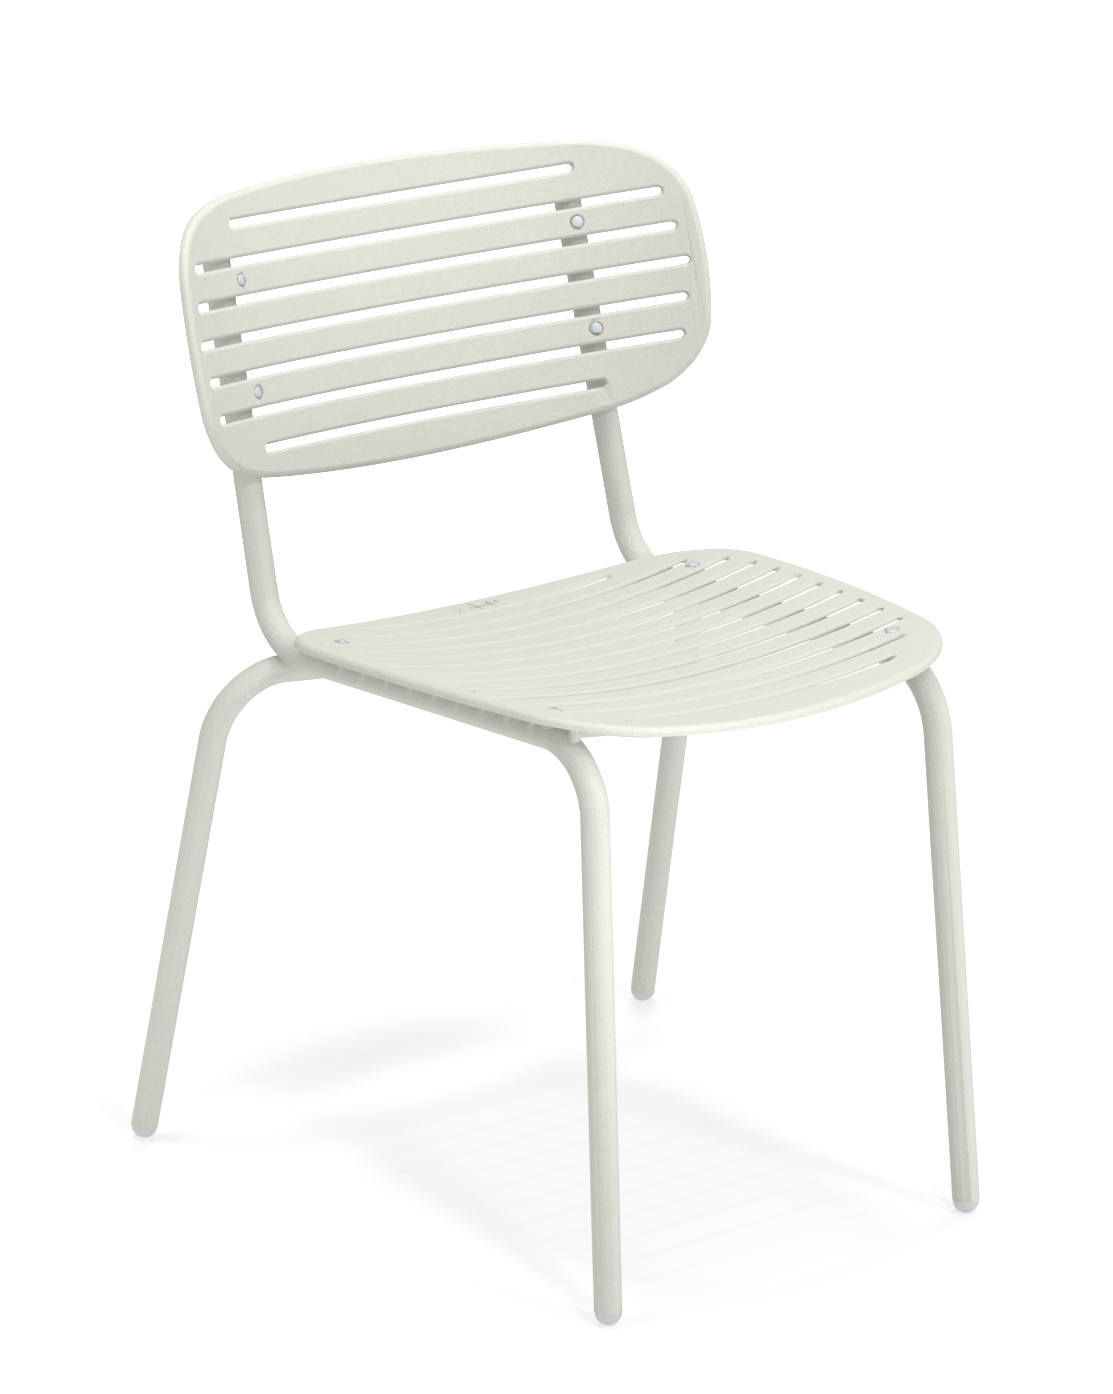 Furniture - Chairs - Mom Stacking chair - / Metal by Emu - White - Varnished steel